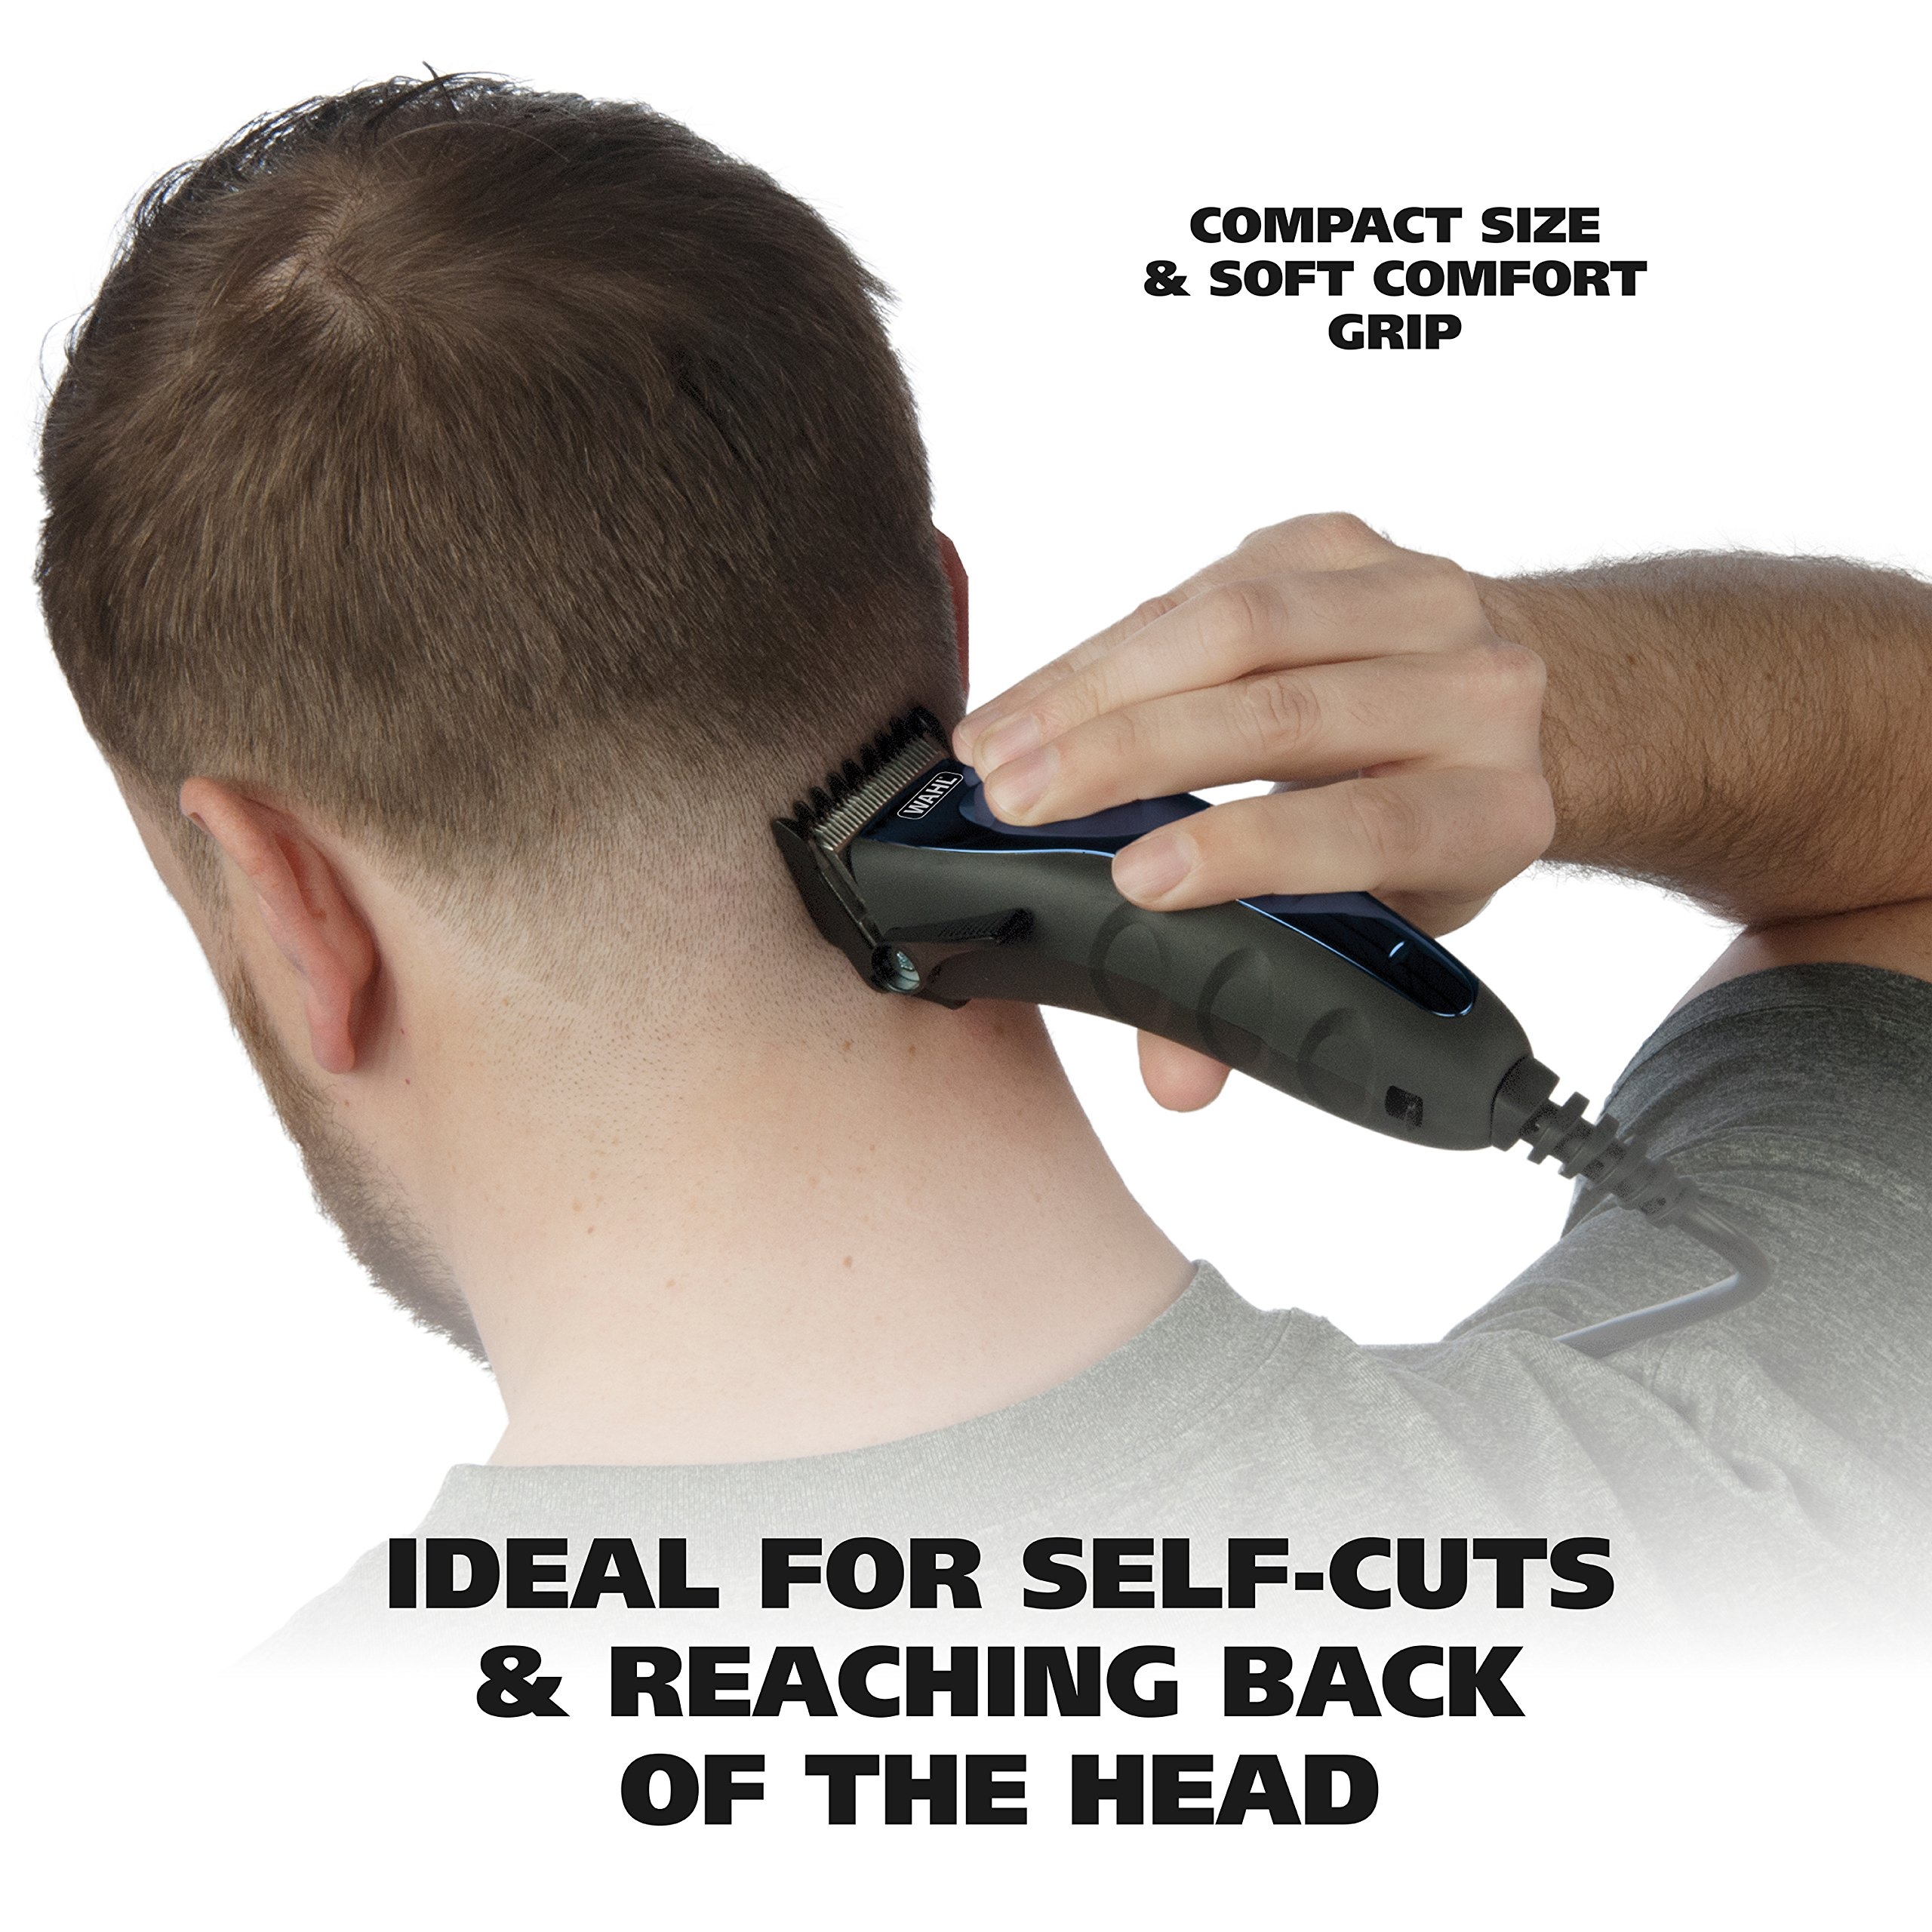 Wahl Clipper Self-Cut Haircutting Kit 79467 Compact Trimming and Personal Grooming Kit by WAHL (Image #3)